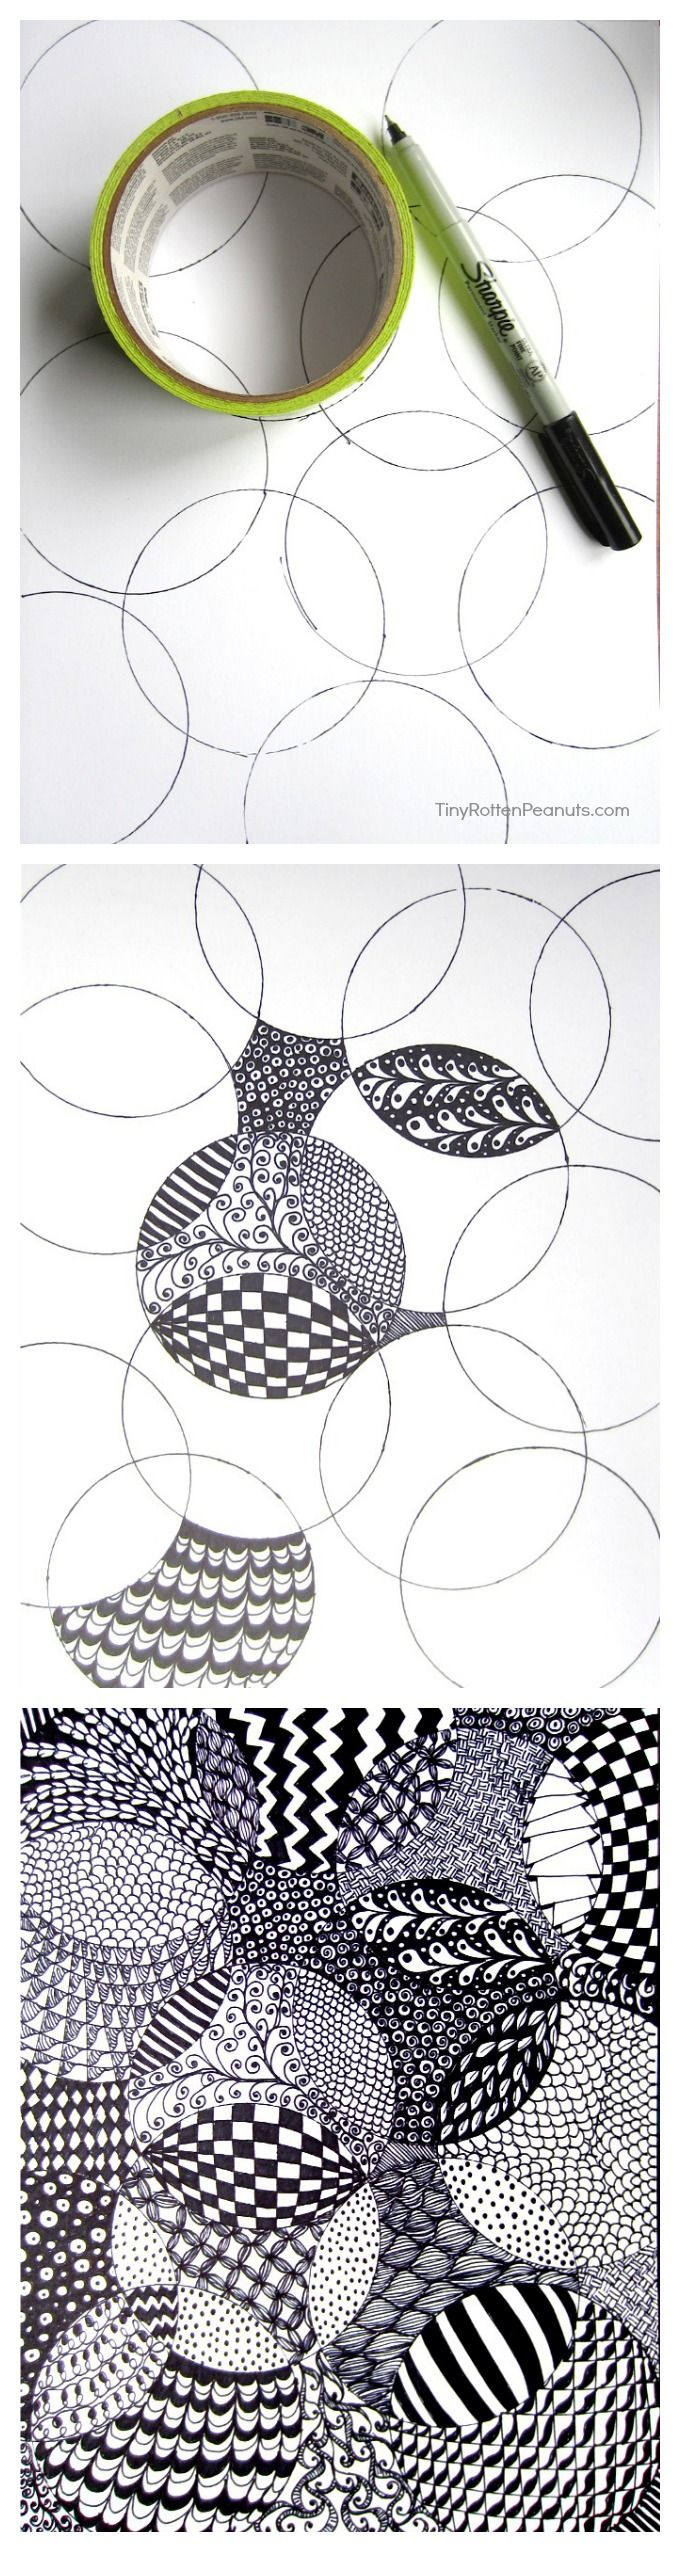 Cool and and super-easy zentangle drawing project - this post has info on how to do it. This would make a great cover for a journal!